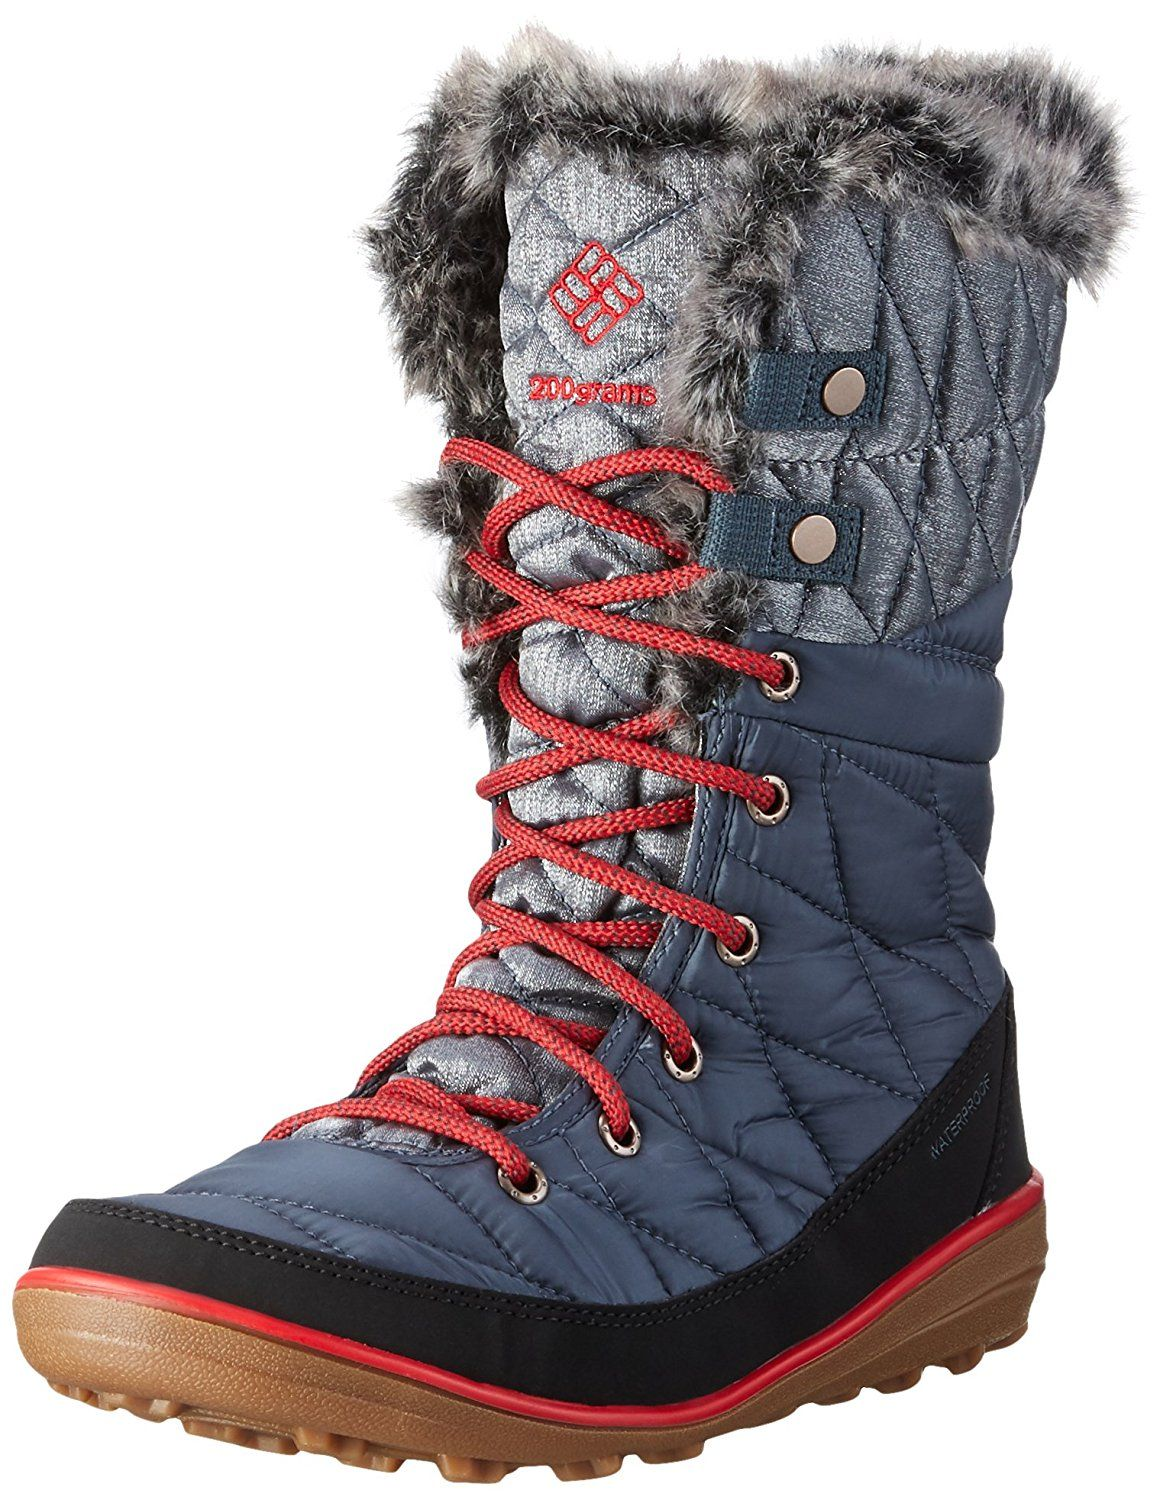 Fur lined collar PU Leather BOOTS New Women Winter Rain Snow Boots Size 10.5 M